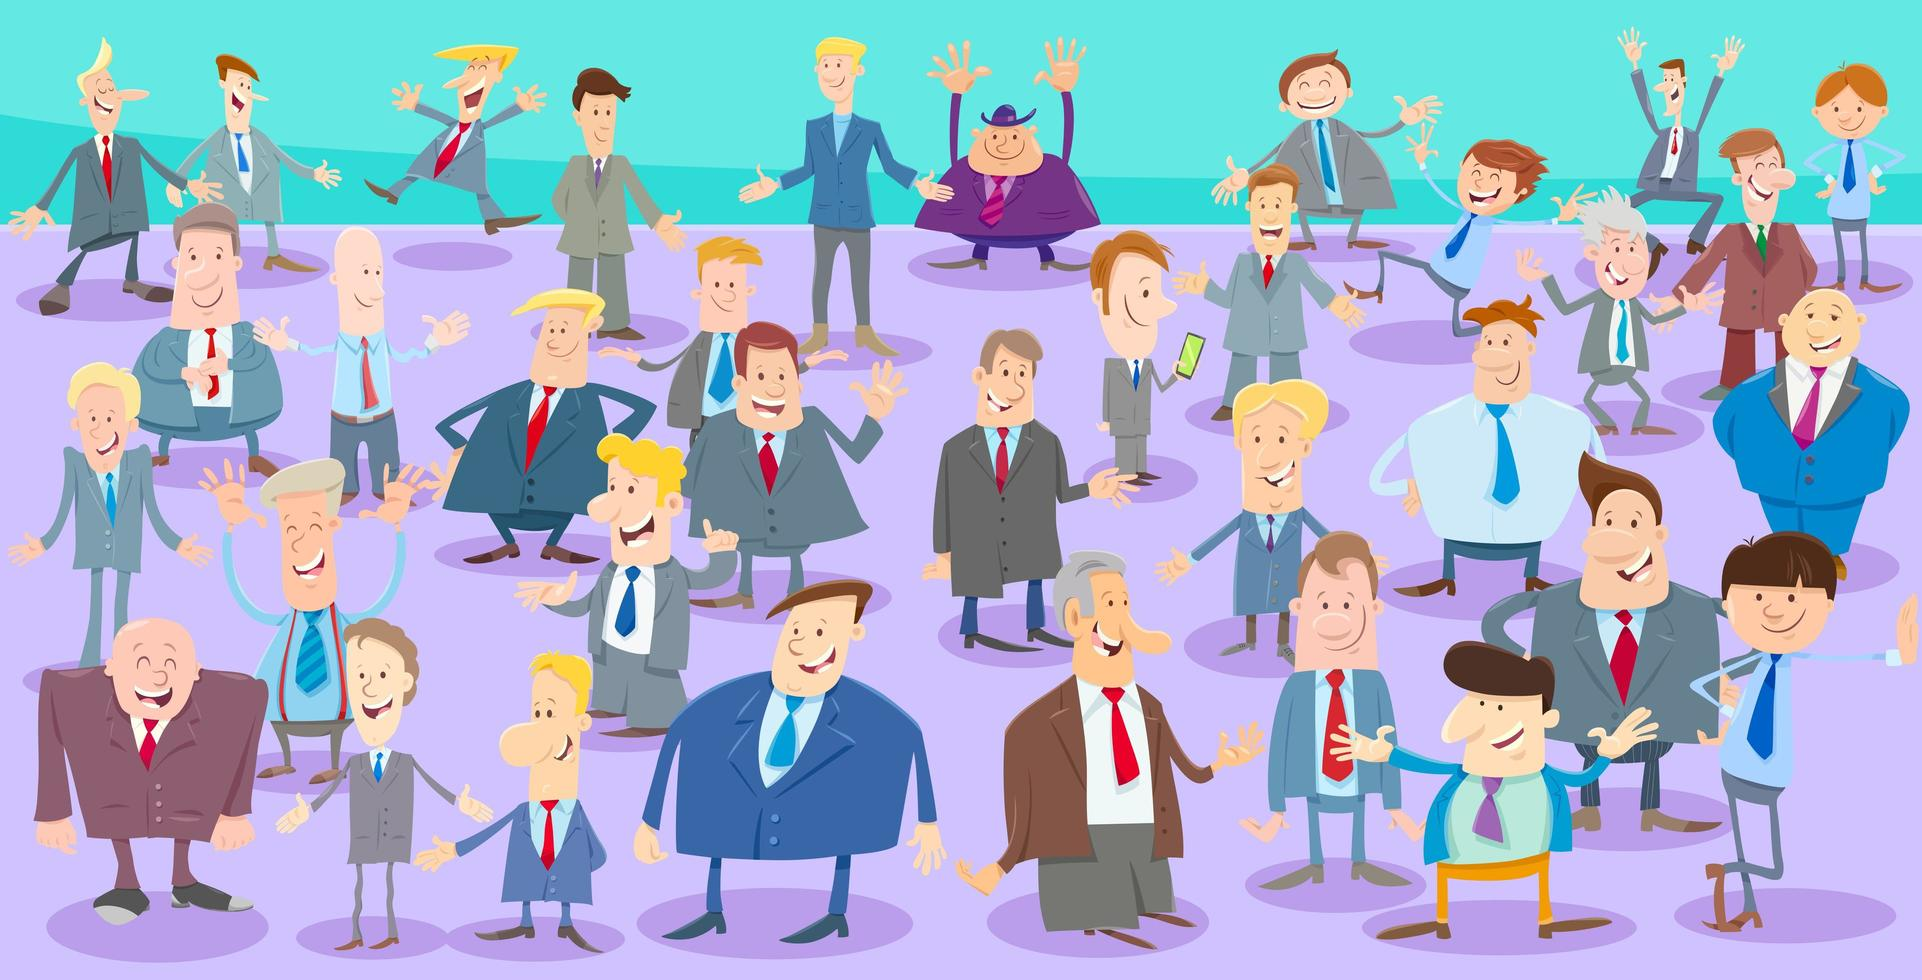 Cartoon businessmen characters large group vector